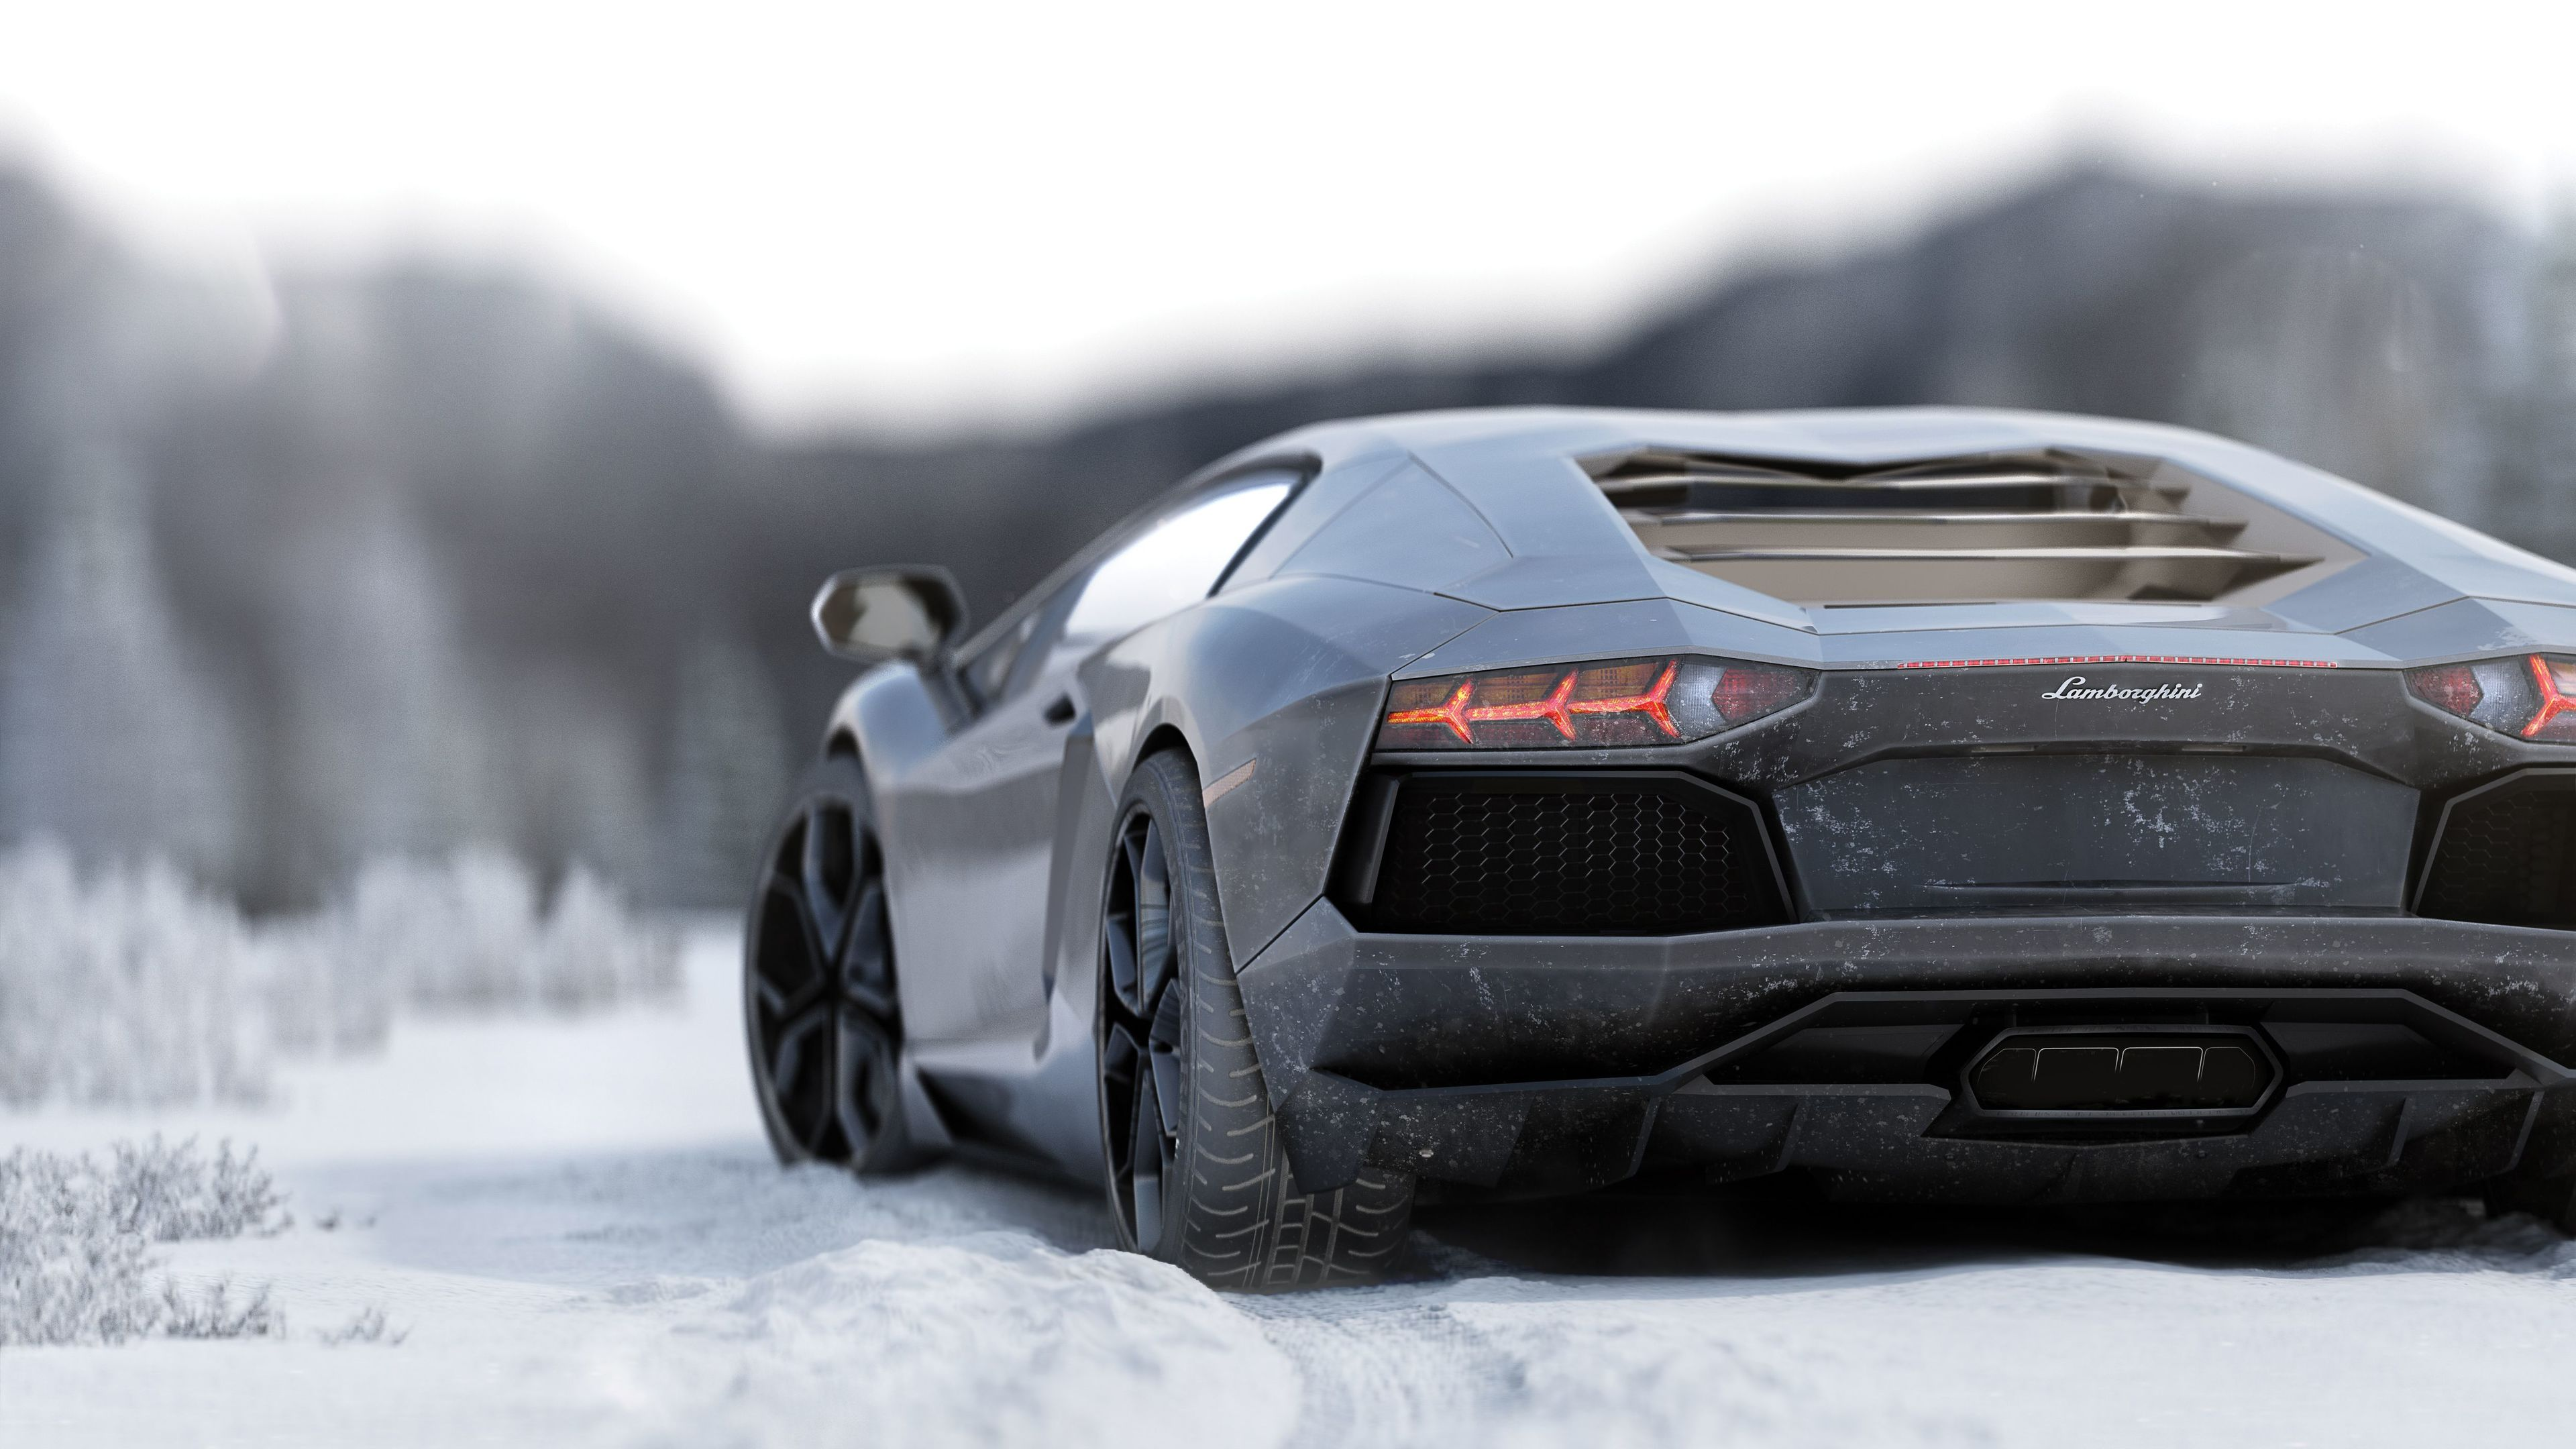 lamborghini aventador 5k rear 1539792931 - Lamborghini Aventador 5k Rear - lamborghini wallpapers, lamborghini aventador wallpapers, hd-wallpapers, cars wallpapers, 5k wallpapers, 4k-wallpapers